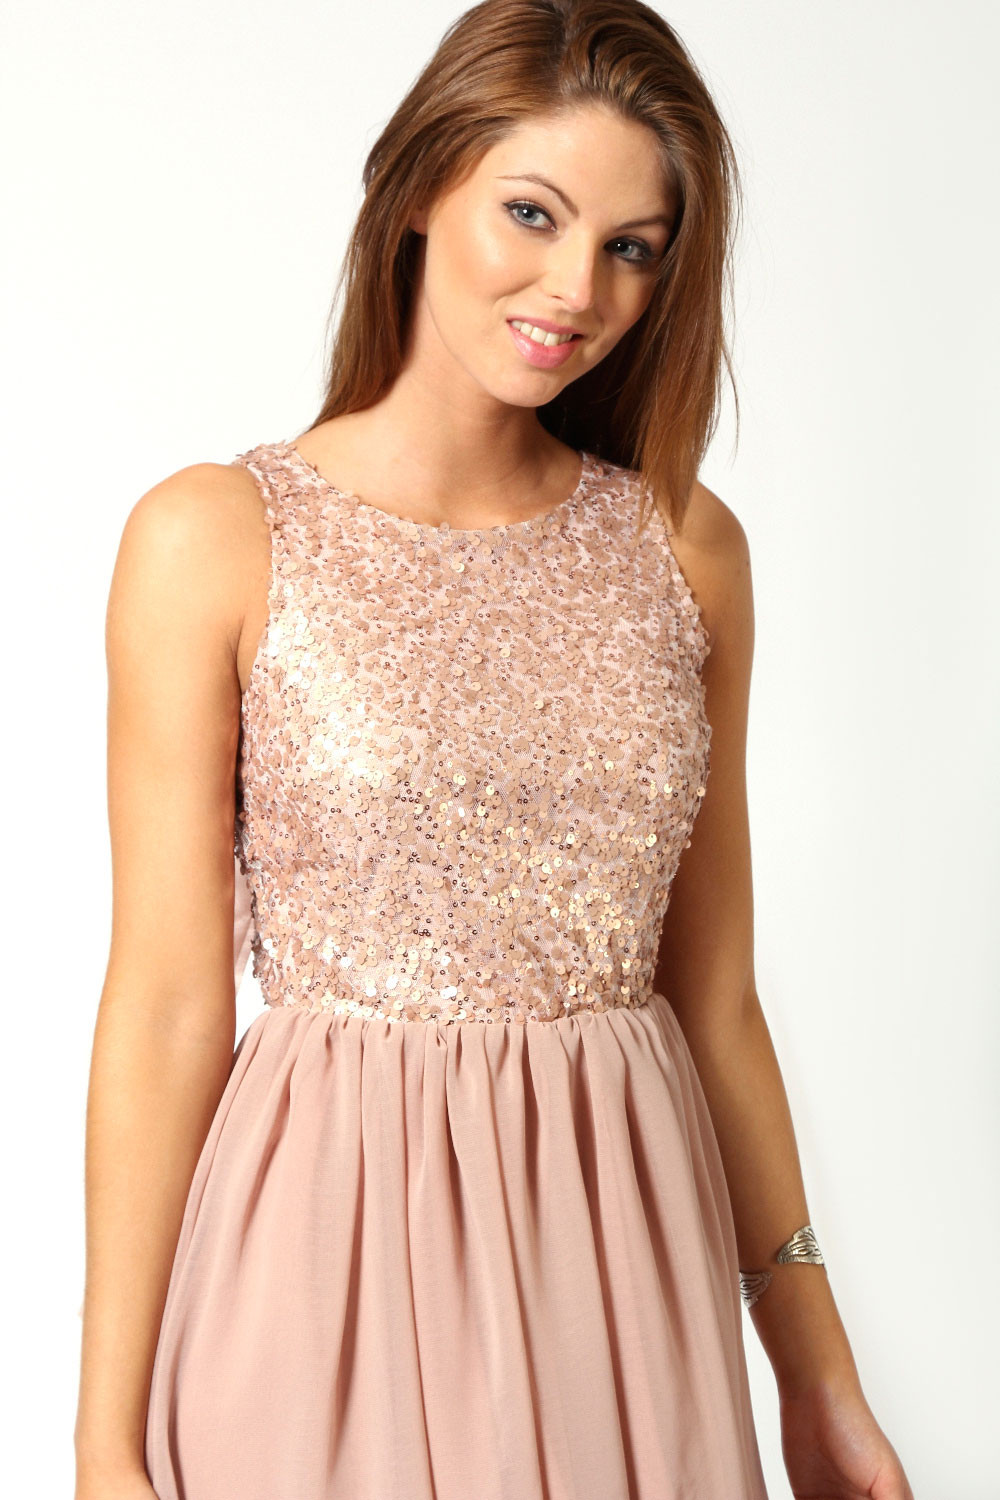 Boohoo Jess Sleeveless Sequin Top Open Back Chiffon Dip